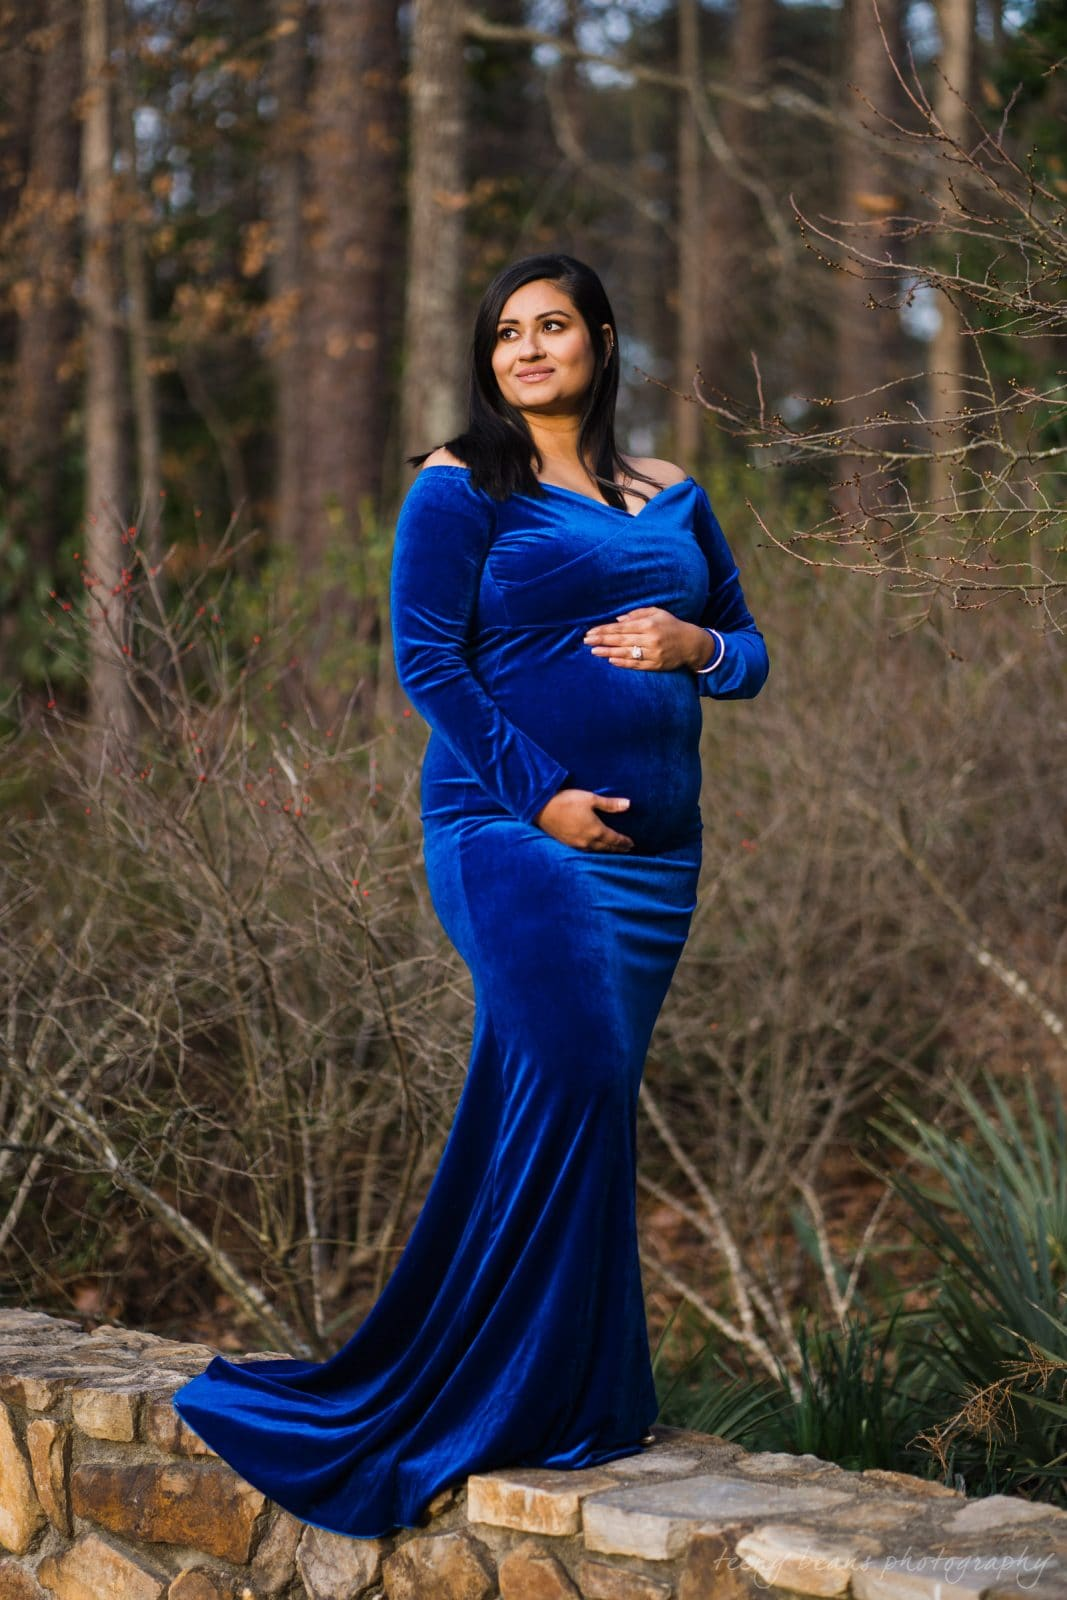 duke gardens maternity portrait photography yashika 8